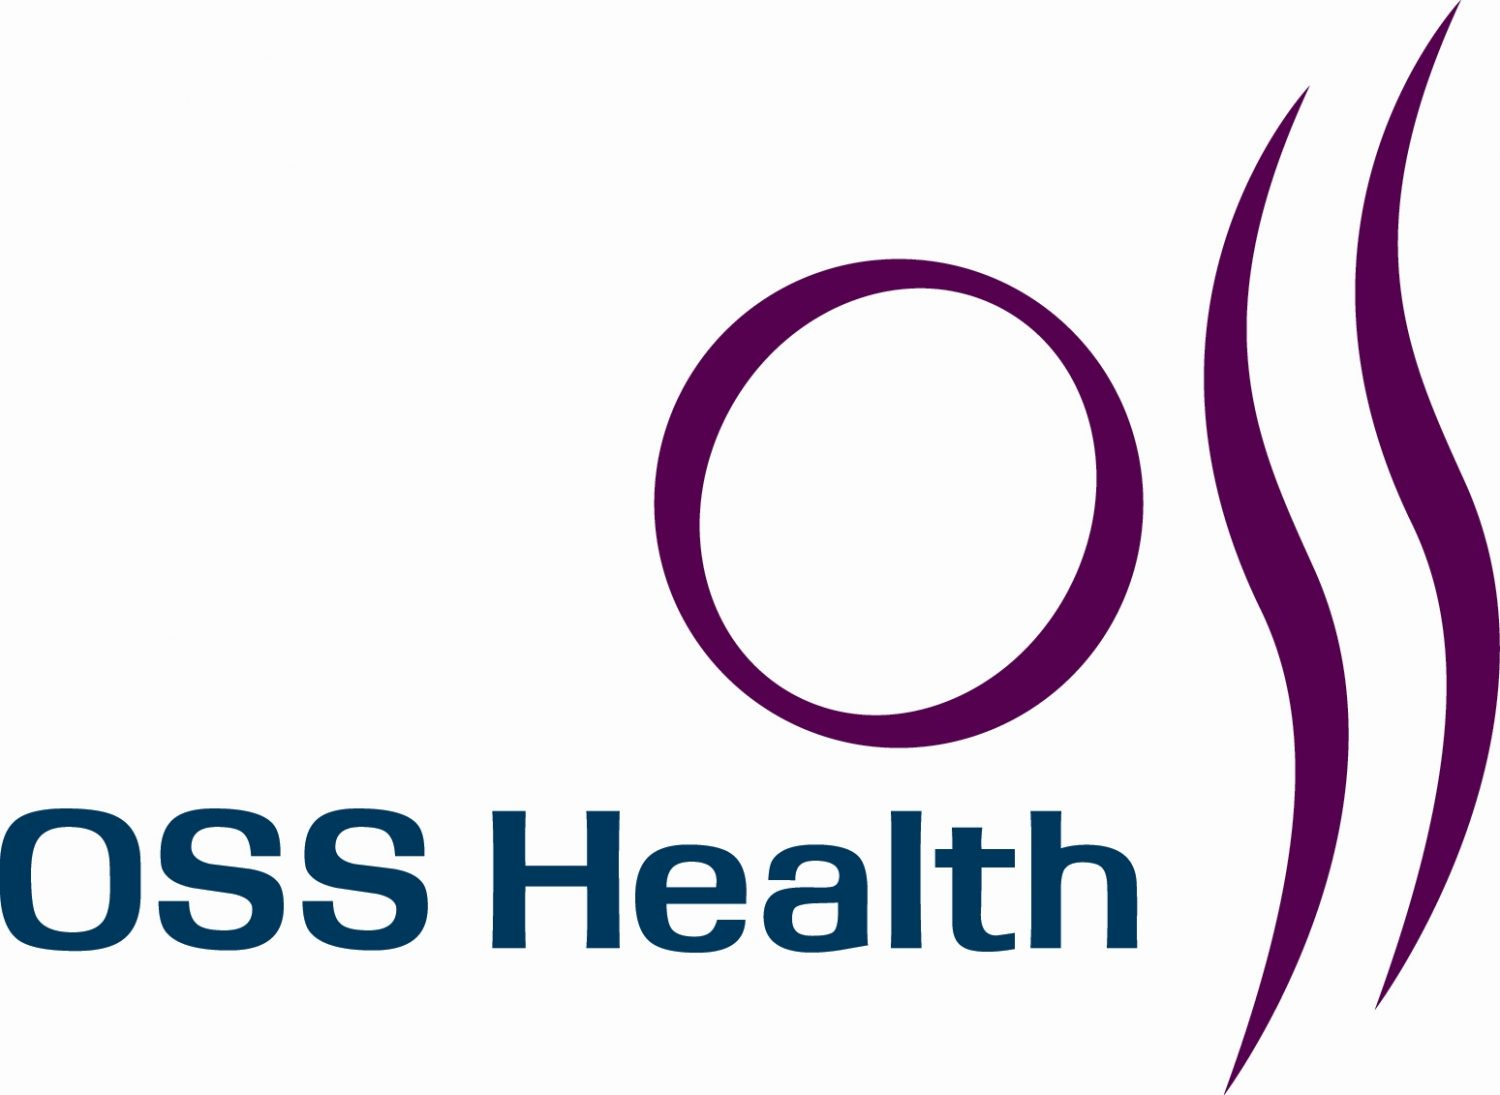 http://crispusattucks.org/wp-content/uploads/2018/04/OSS-Health-logo-color.jpg